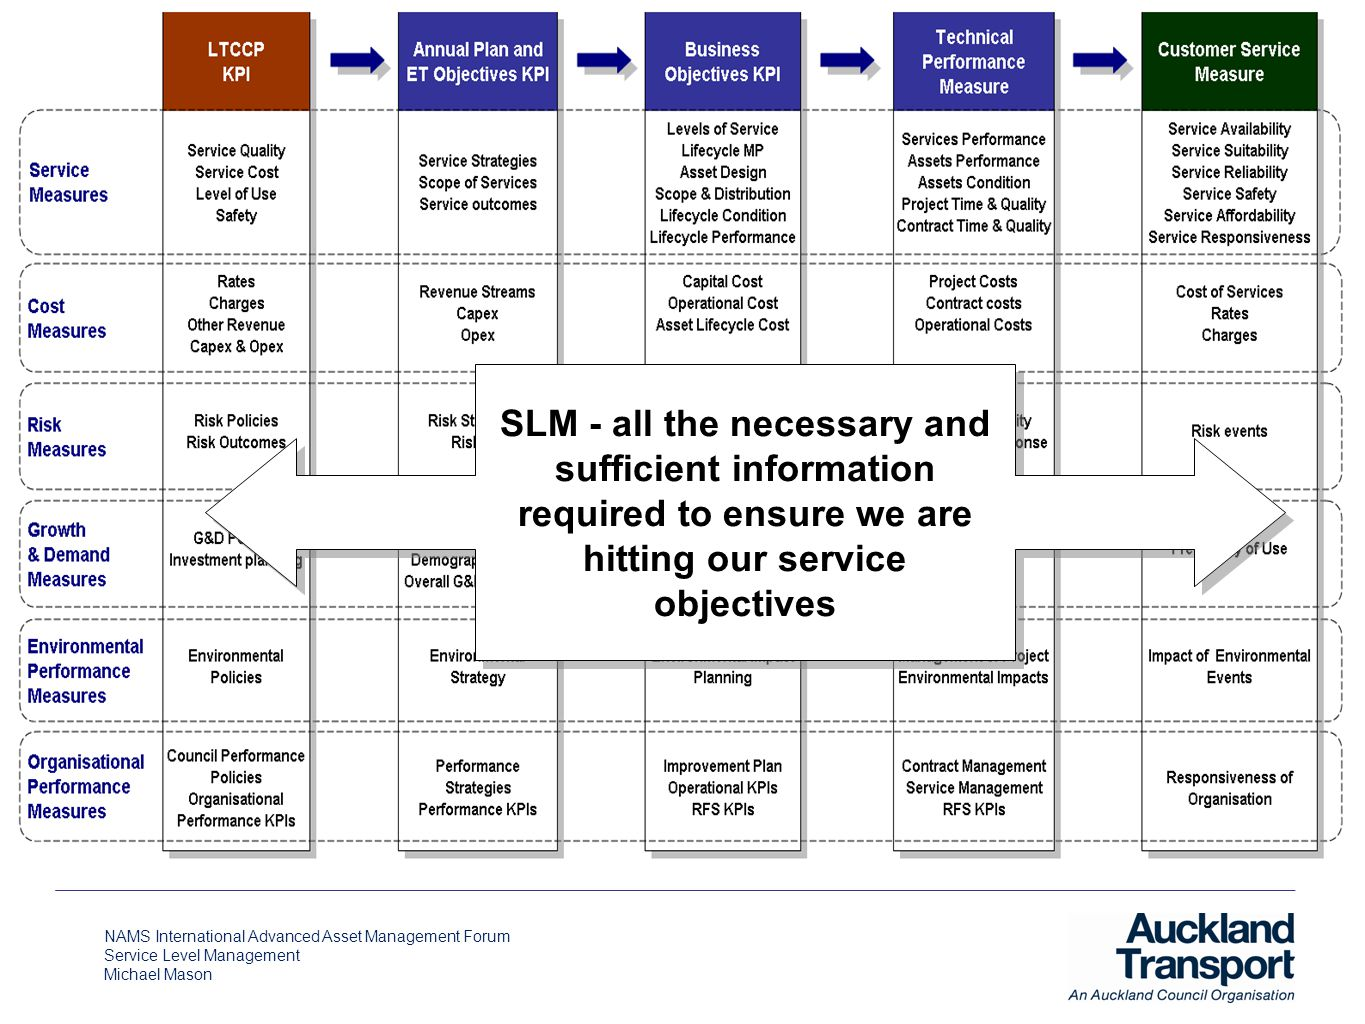 NAMS International Advanced Asset Management Forum Service Level Management Michael Mason SLM - all the necessary and sufficient information required